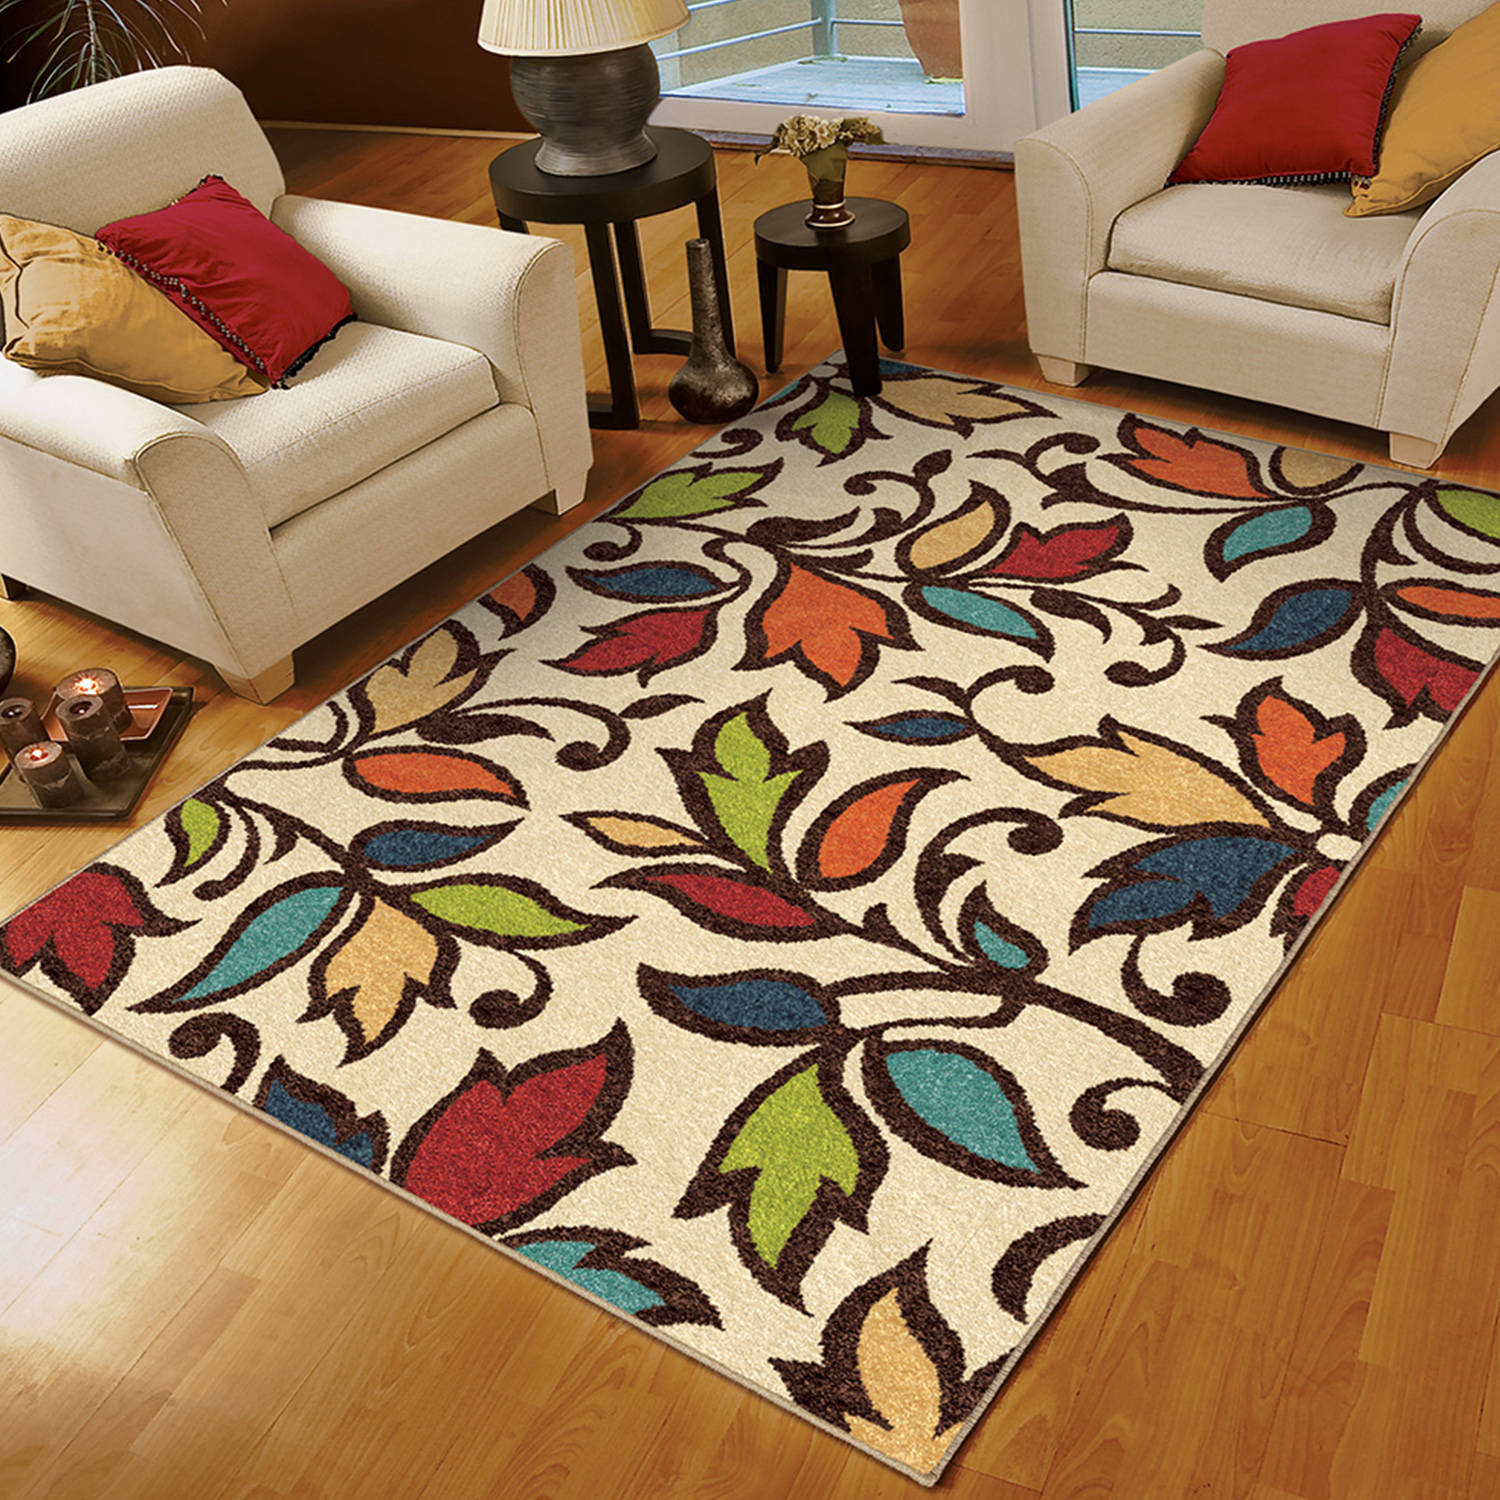 orian rugs indoor/outdoor dicarna cream leaves area rug - walmart